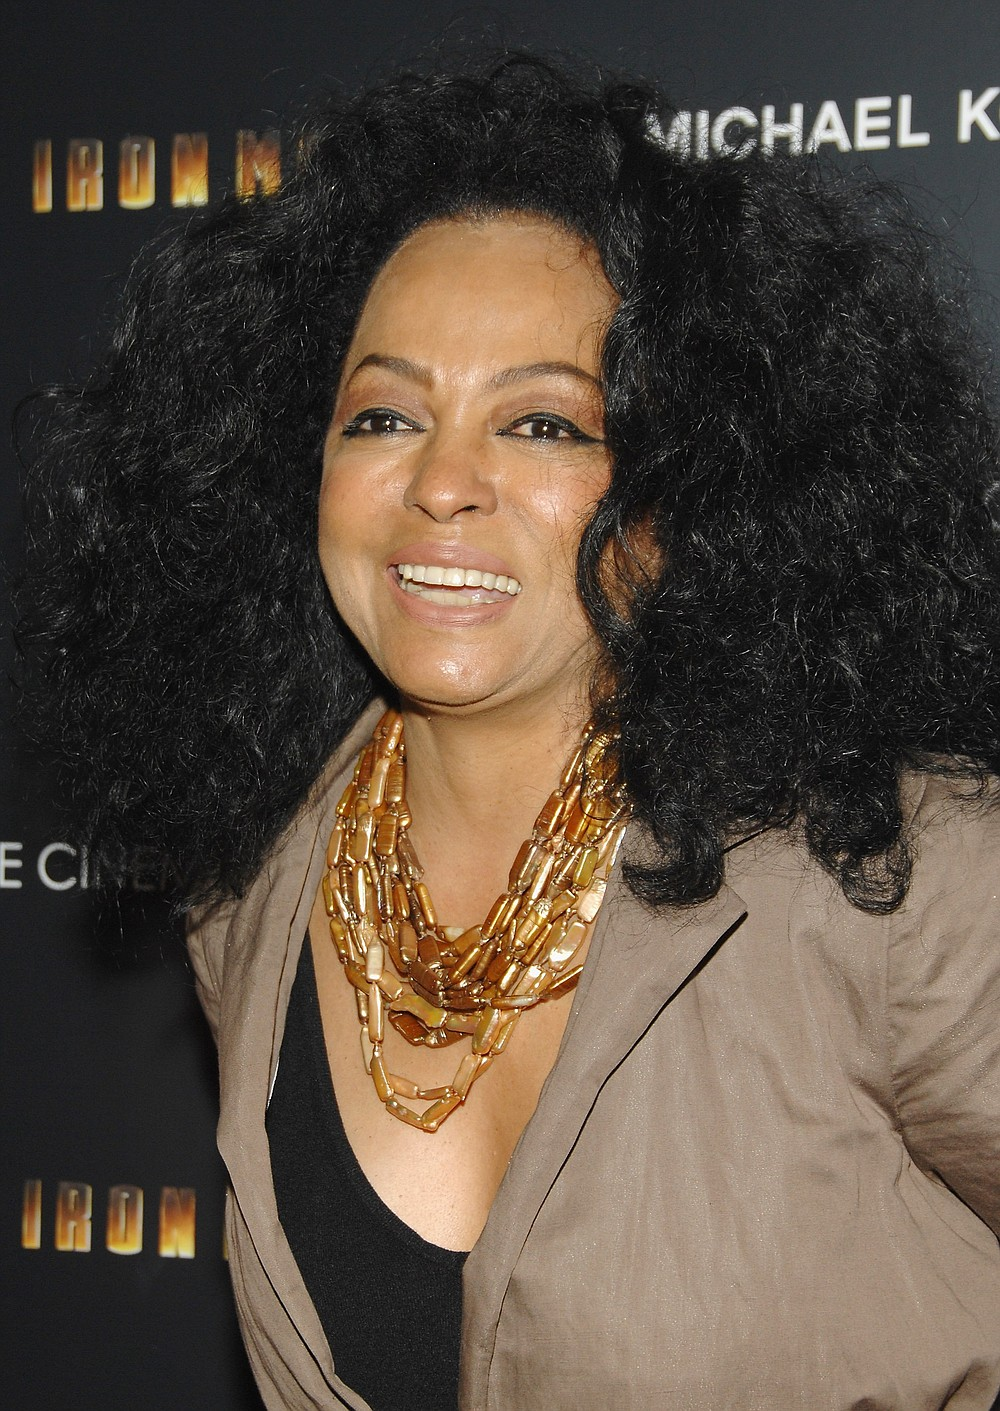 """Diana Ross is on the list of Pride anthems at No. 3 with """"I'm Coming Out.""""  (AP file photo/Evan Agostini)"""